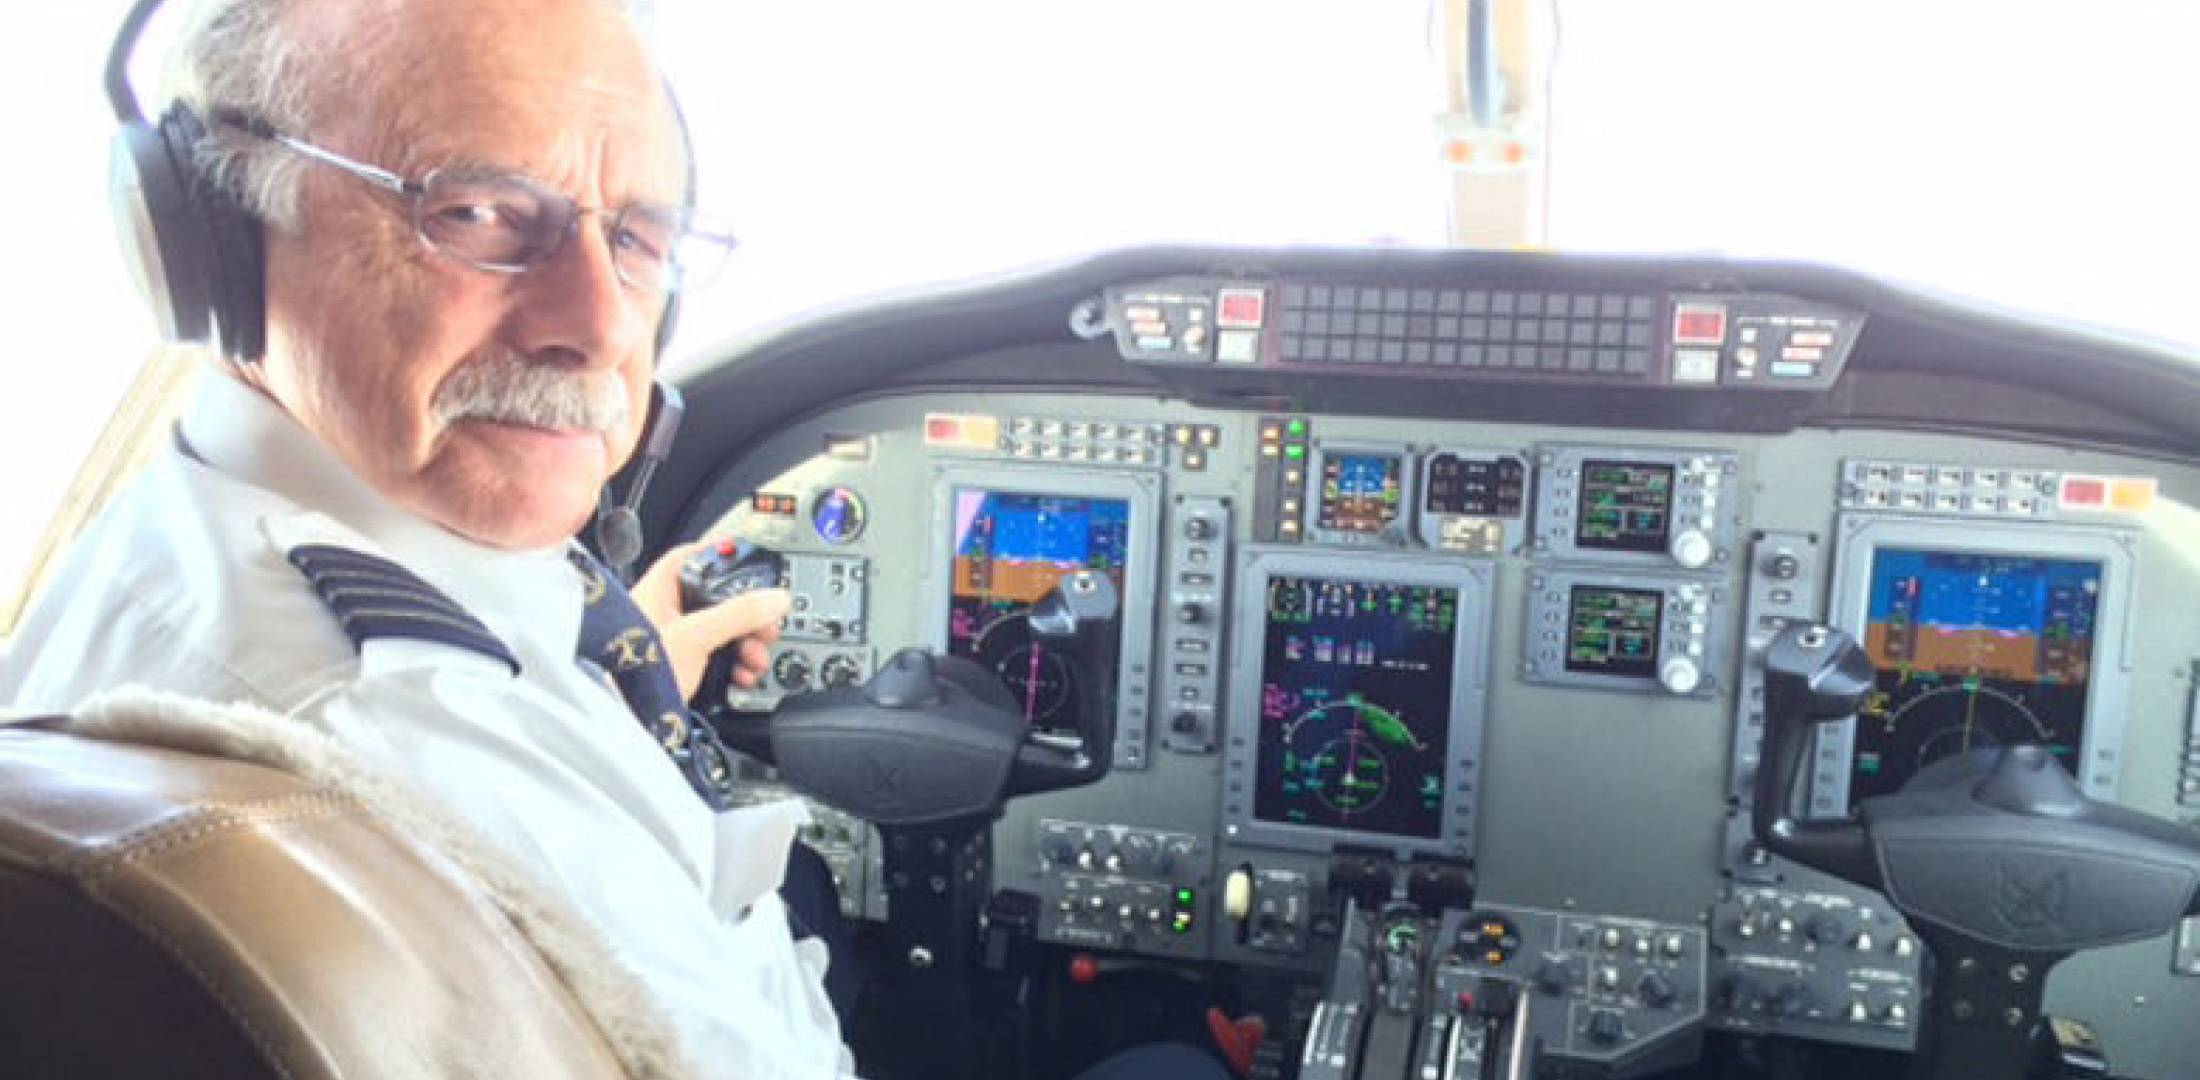 retired NetJets pilot Barton Cole